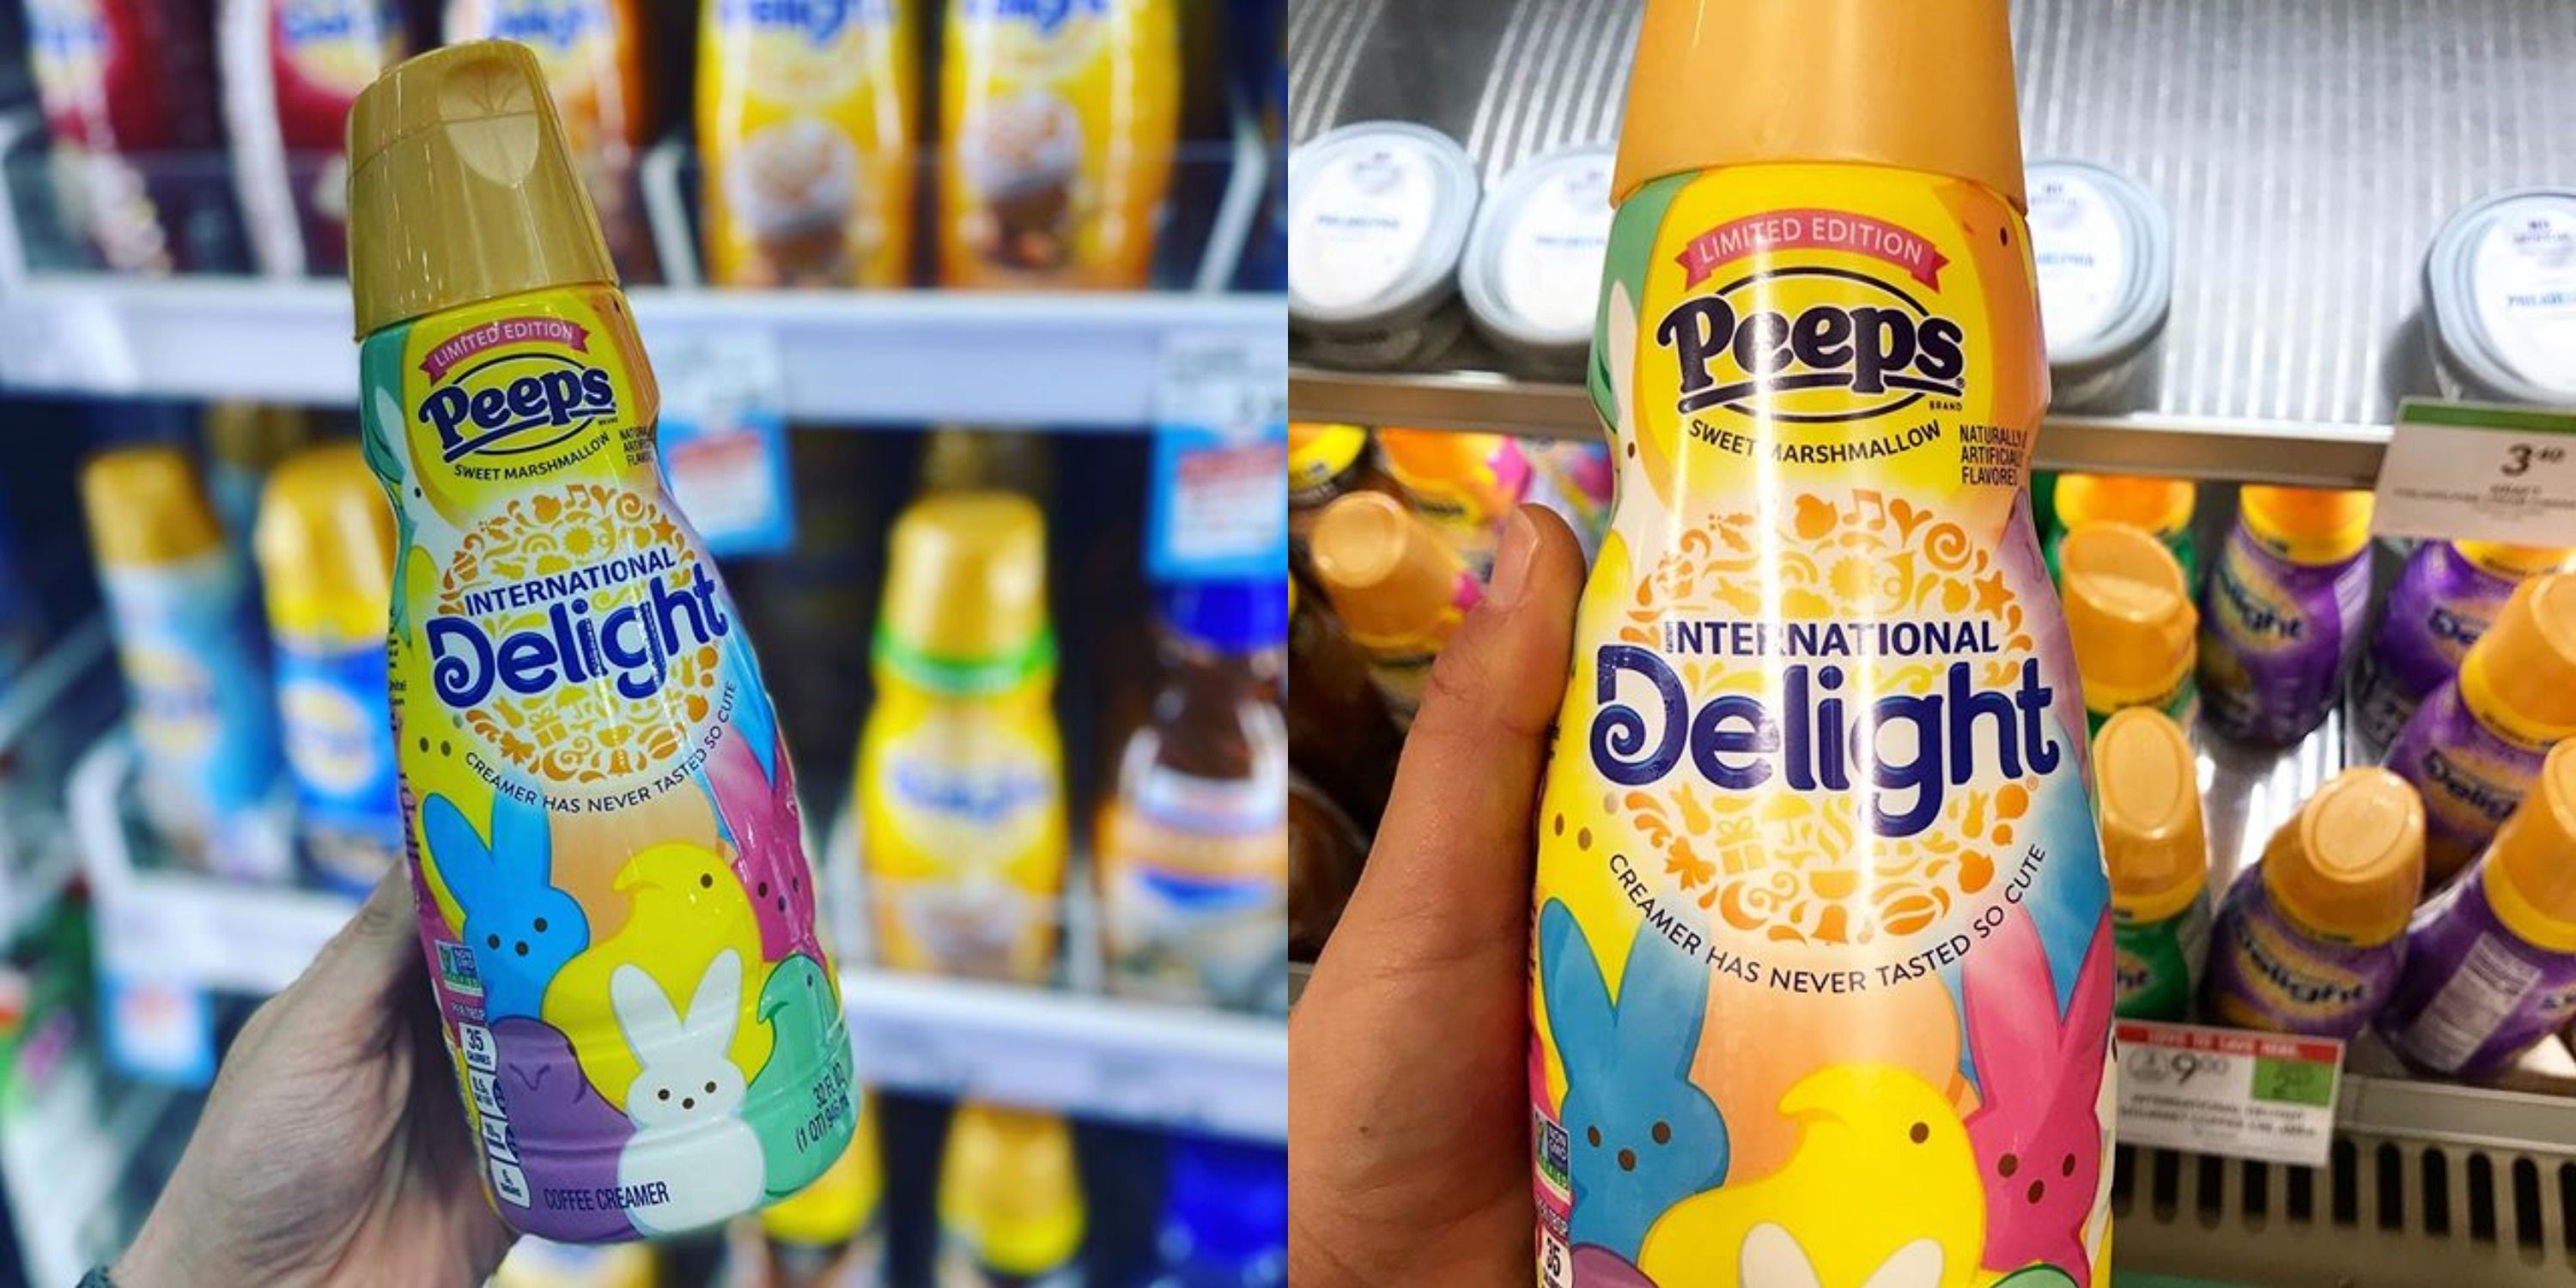 Peeps Coffee Creamer Is Back In Stores 3 Months Before Easter